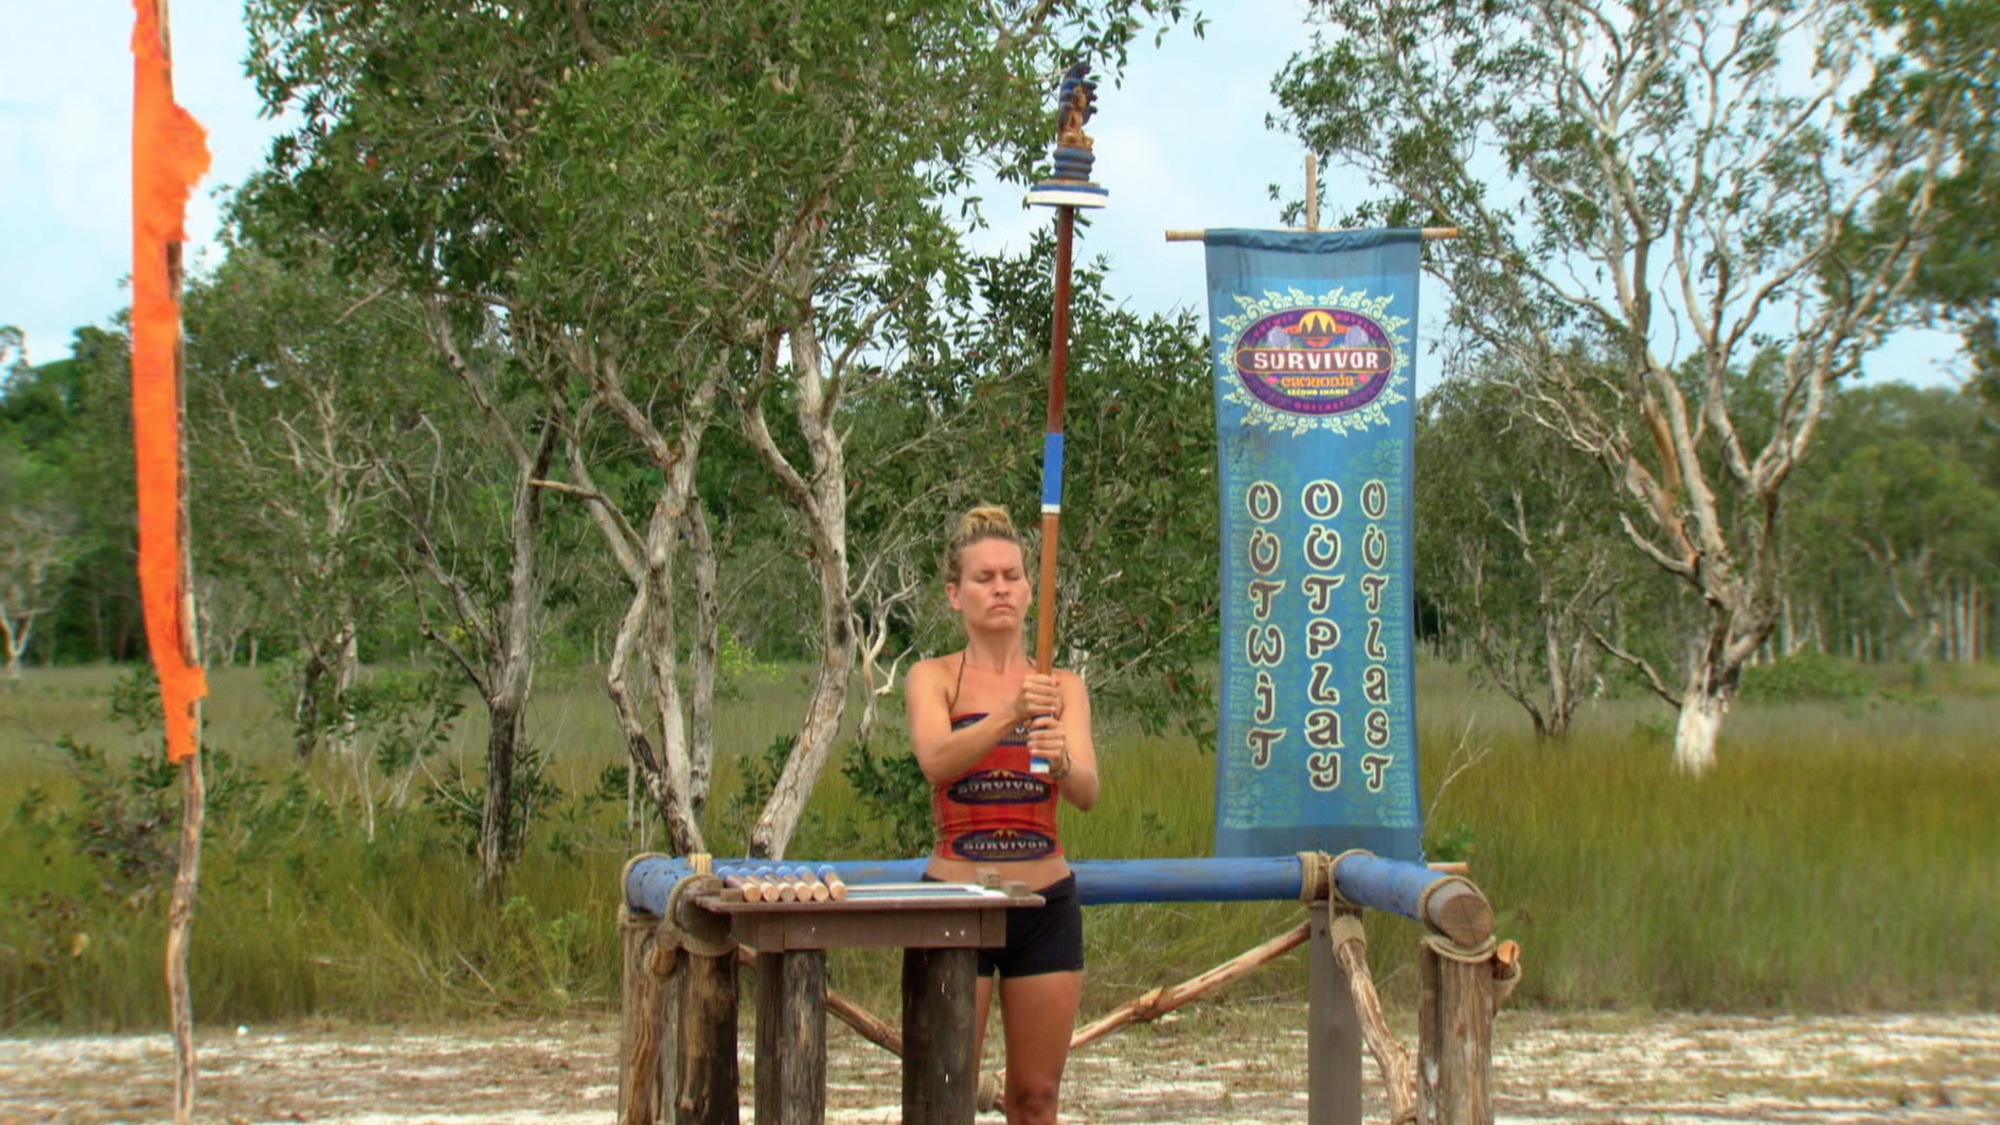 Abi-Maria Gomes competes in challenge on Survivor: Second Chance